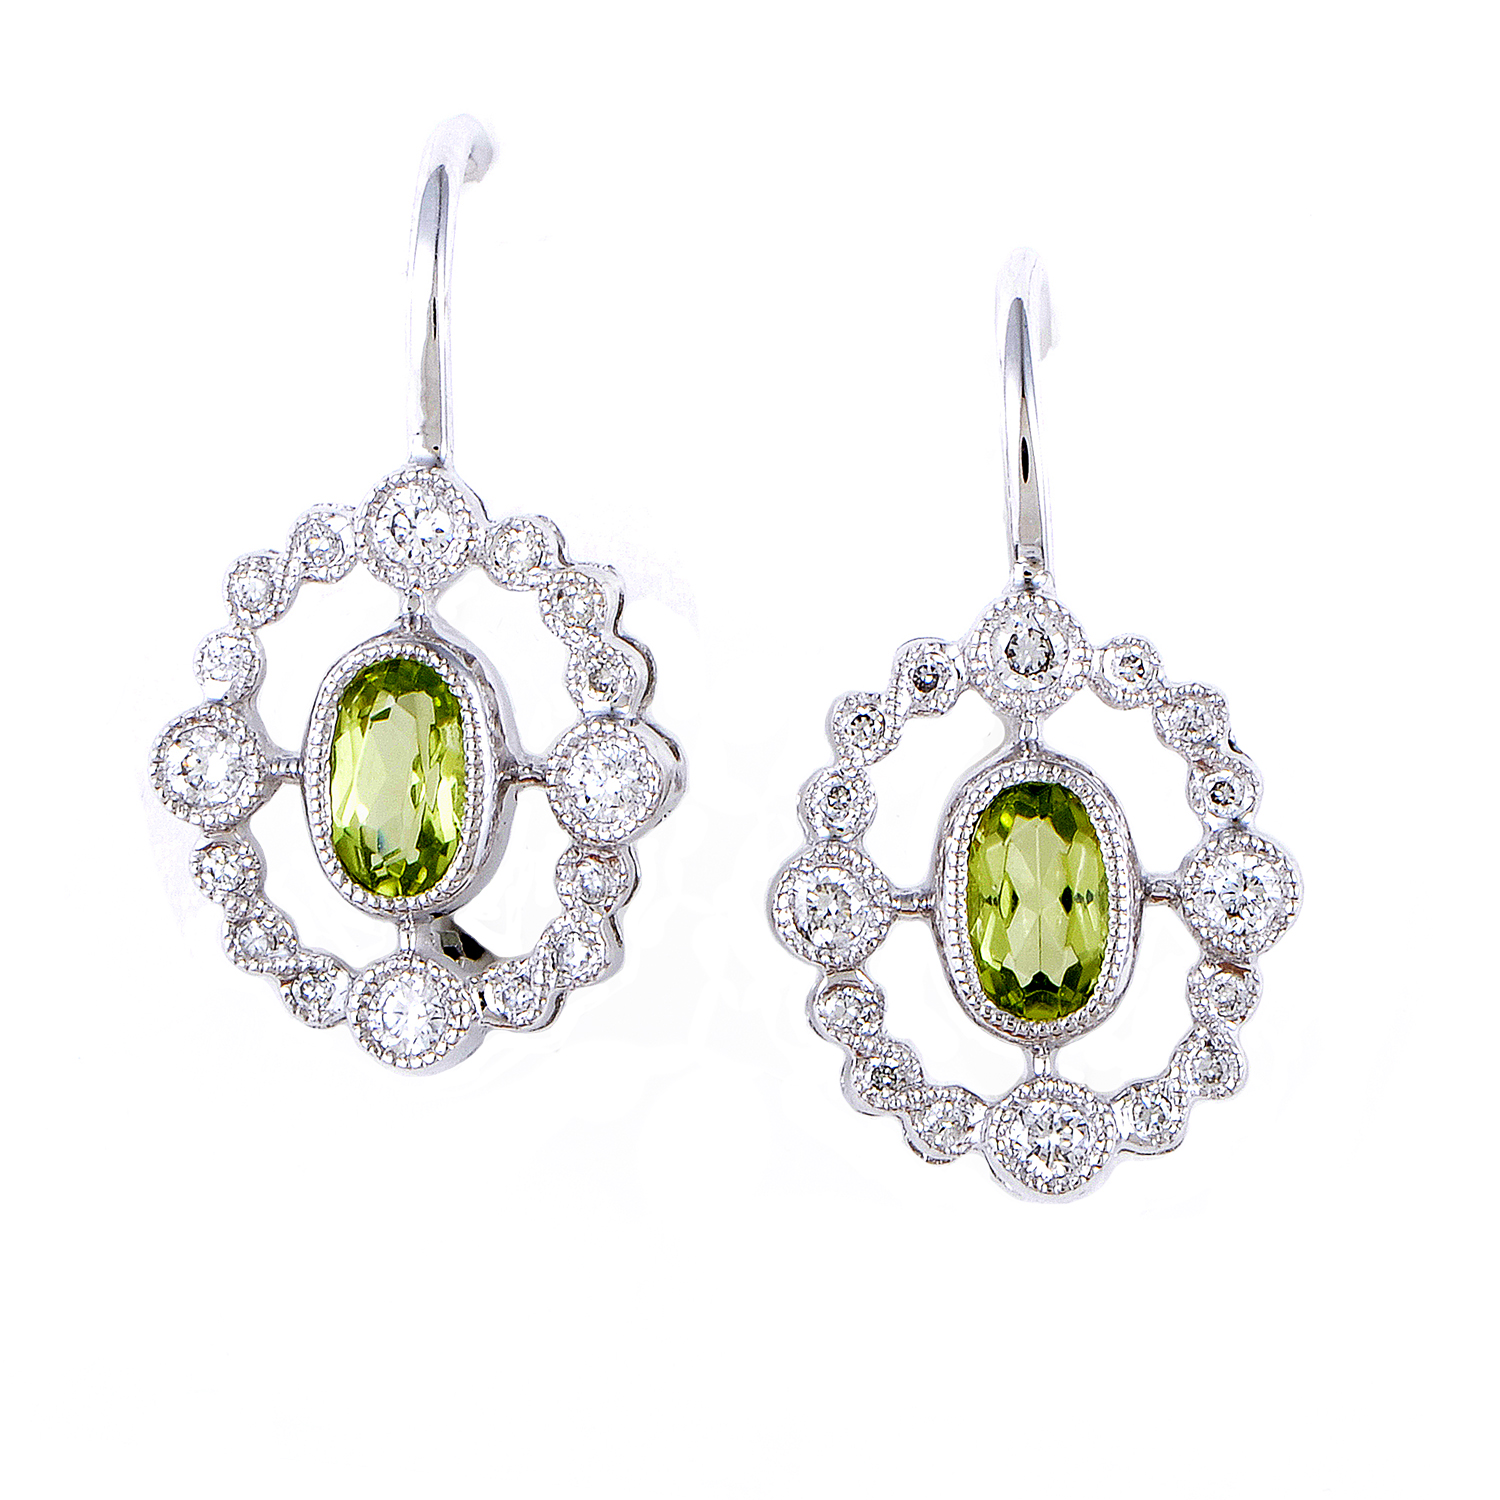 Women's 18K White Gold Diamond & Peridot Dangle Earrings SEEP3098RBZPE